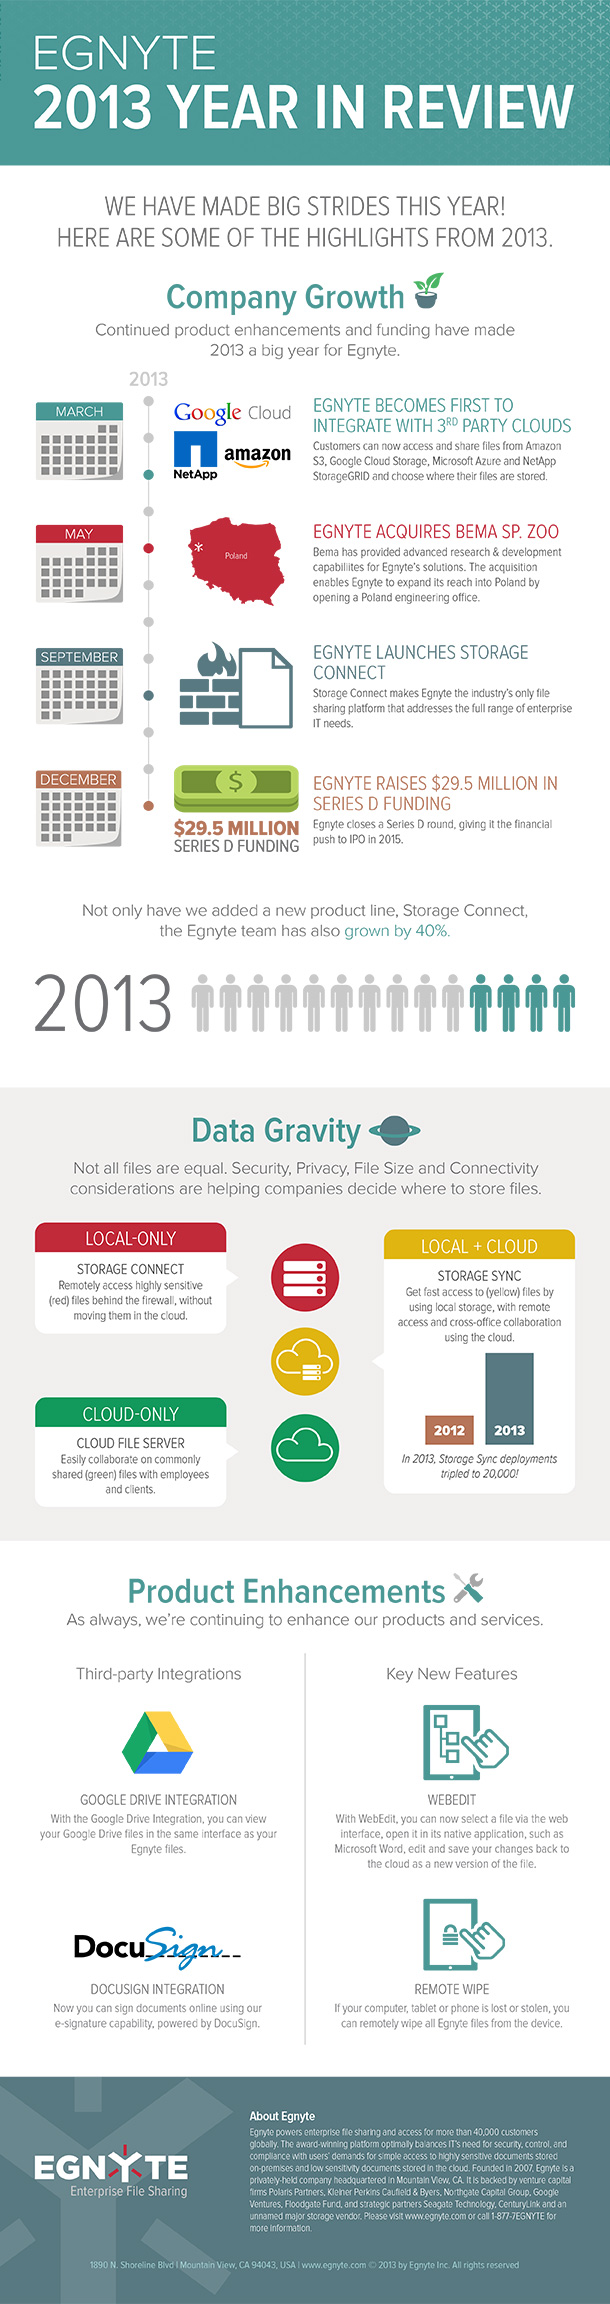 2013 Year in Review at Egnyte - Egnyte Blog